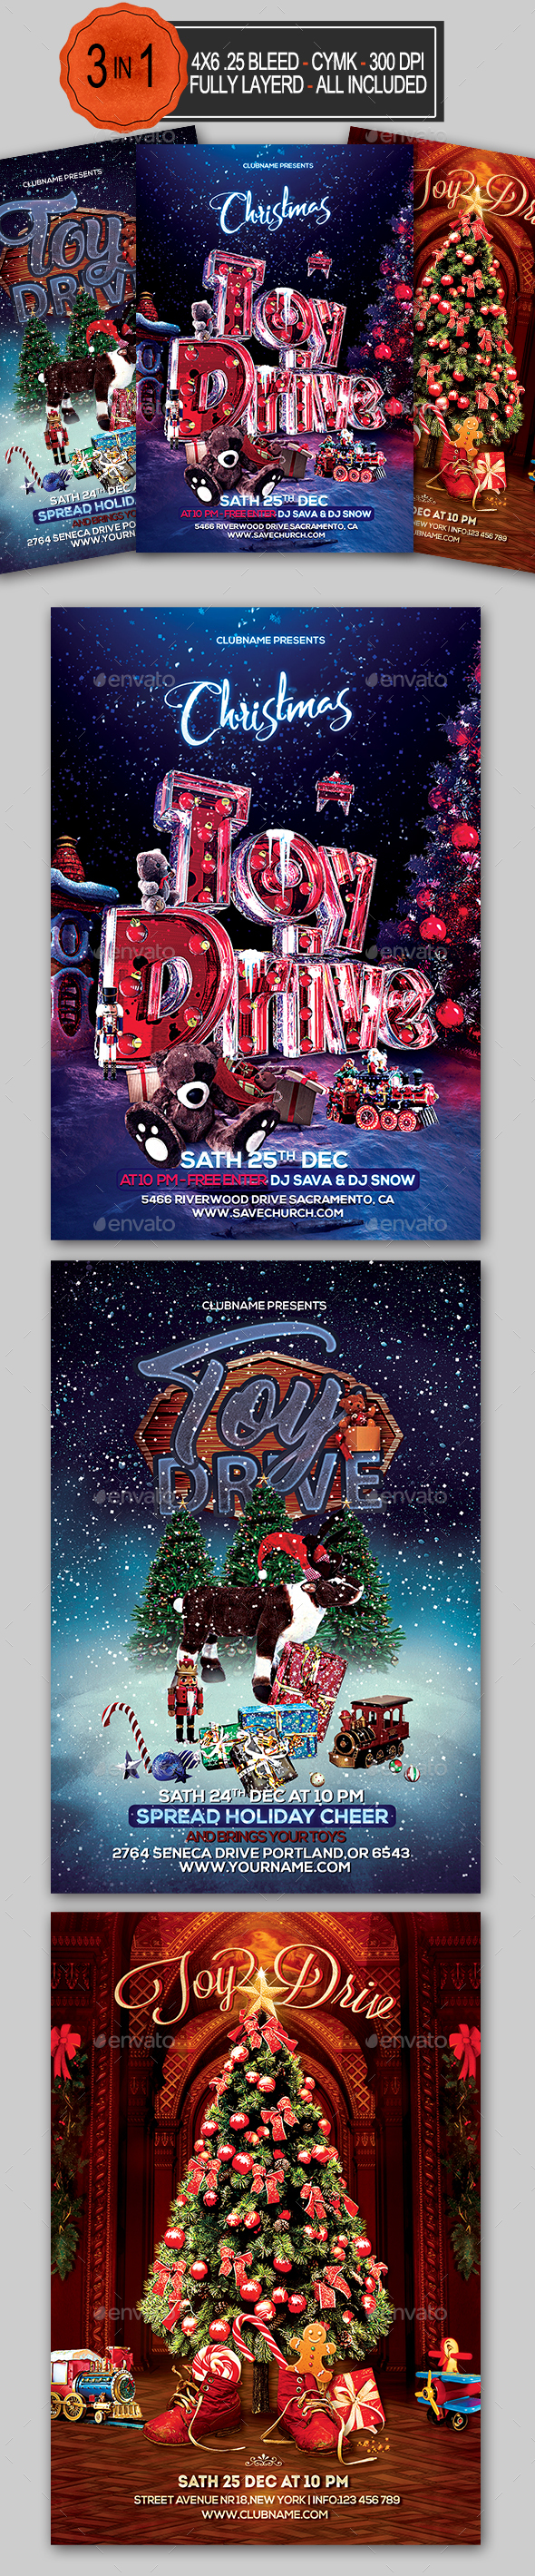 GraphicRiver Toy Drive Flyer Bundle 21058677